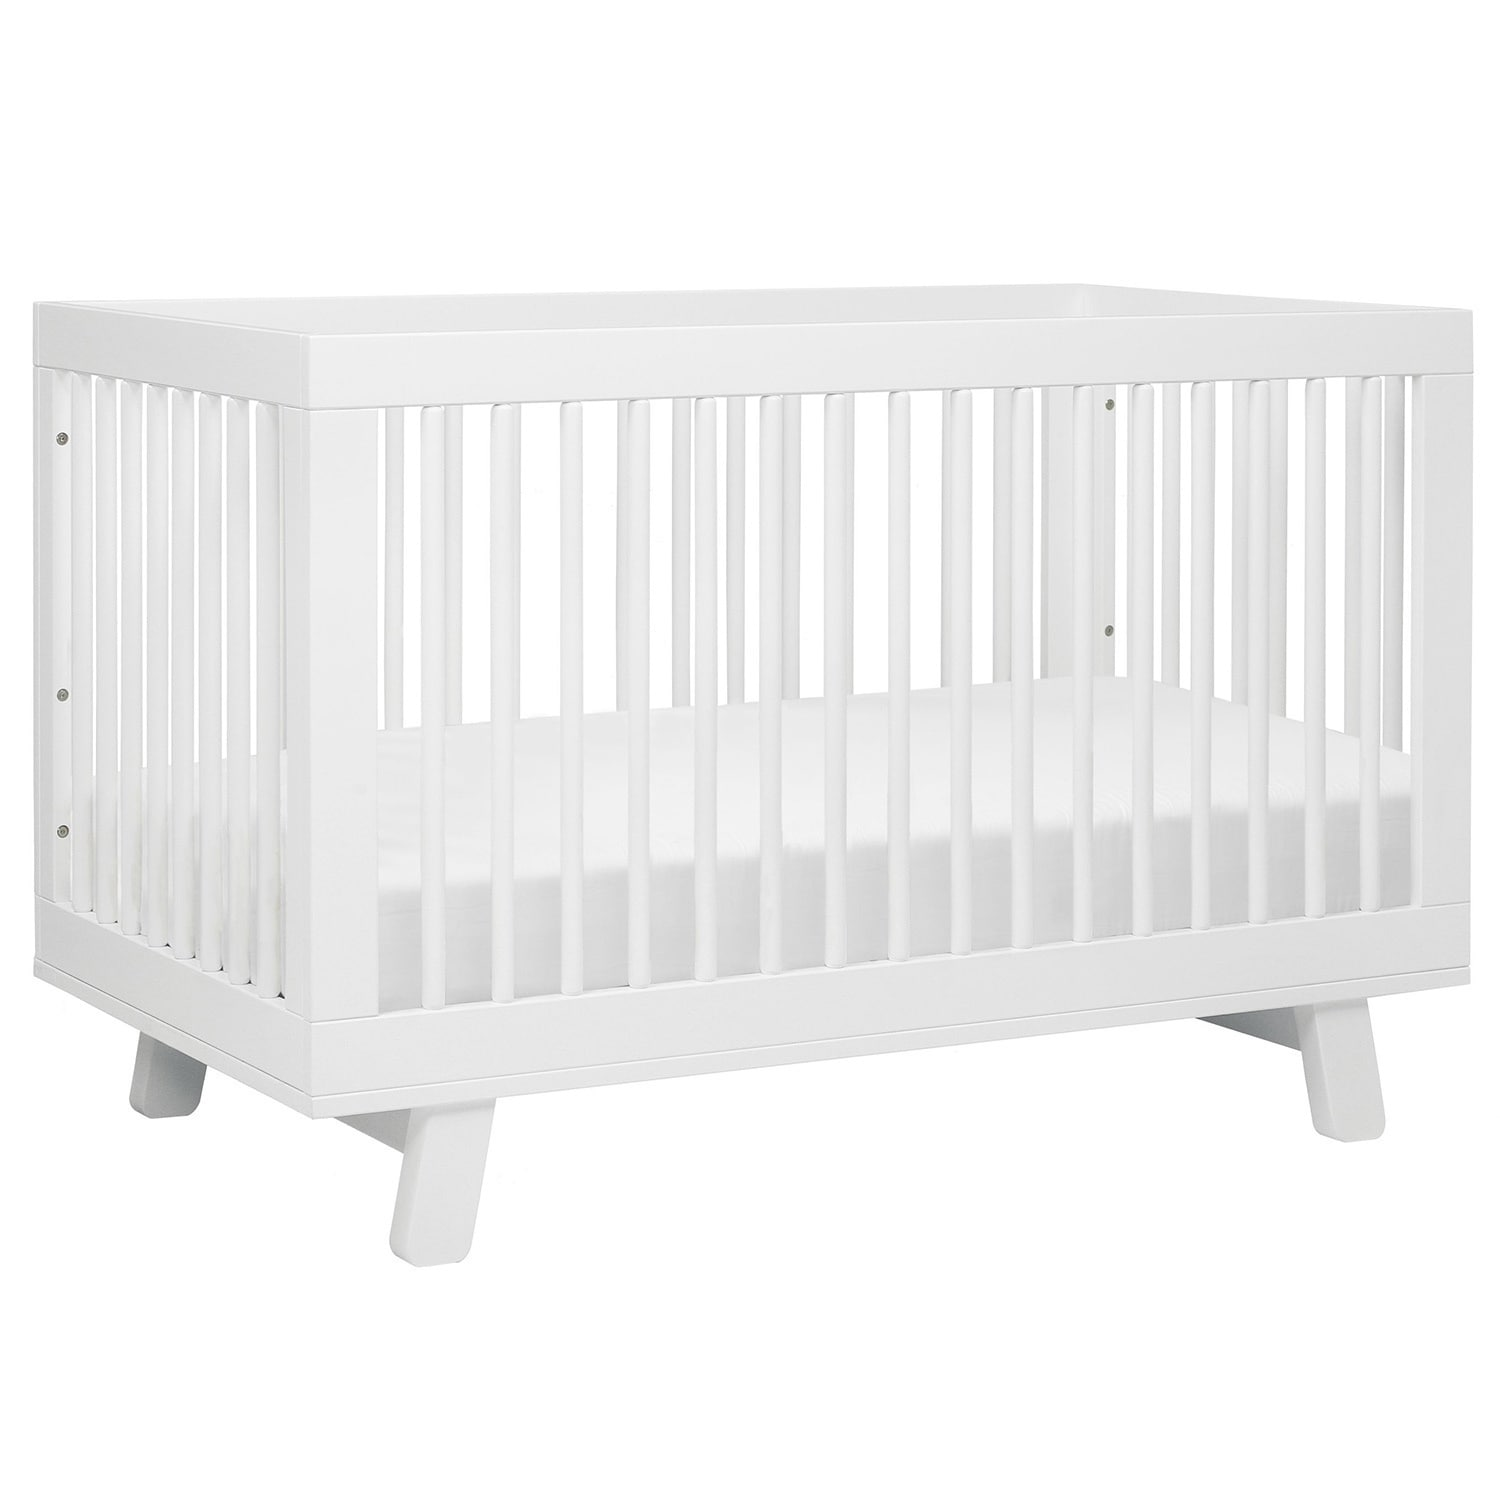 babyletto hudson in convertible crib w toddler bed conversion kit free shipping today  overstockcom  . babyletto hudson in convertible crib w toddler bed conversion